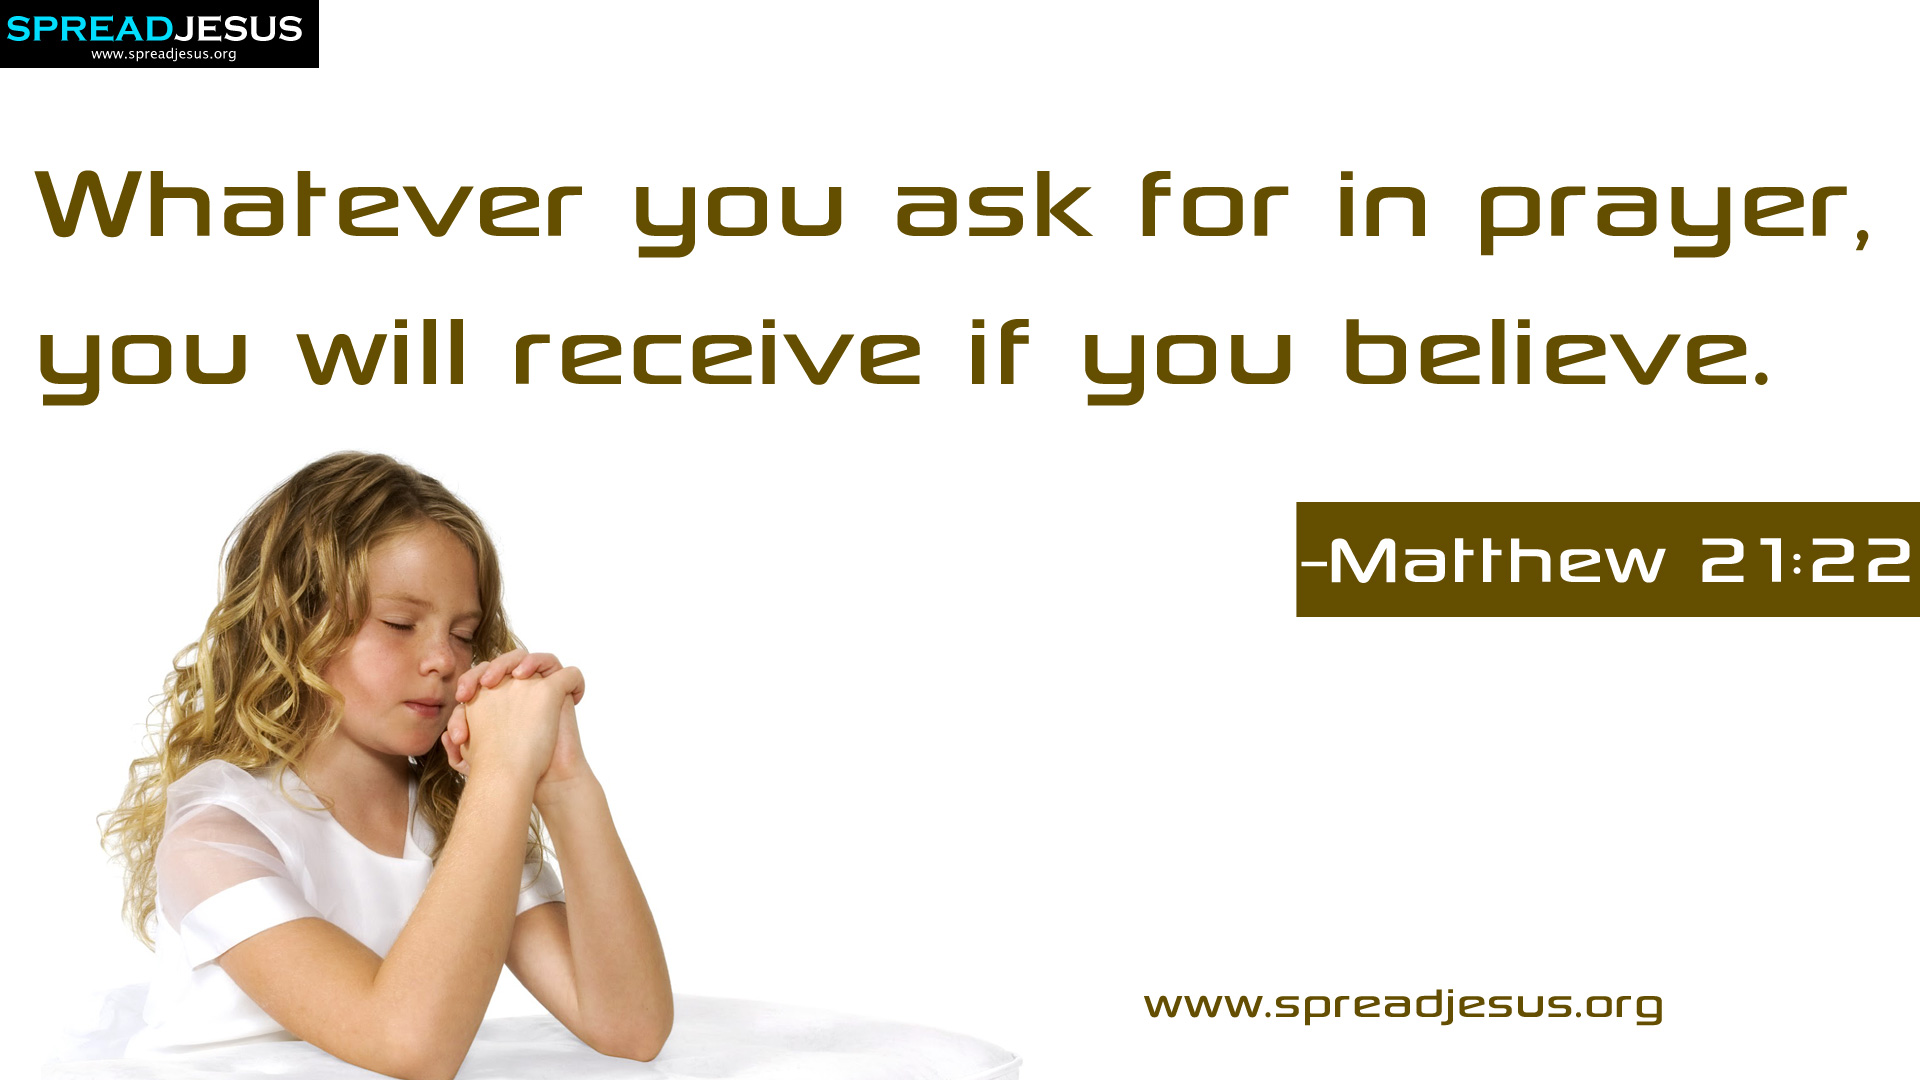 HD WALLPAPERS Matthew 21:22 Whatever you ask for in prayer, you will receive if you believe.-WORD OF GOD HD WALLPAPERS DOWNLOAD IMAGE-spreadjesus.org